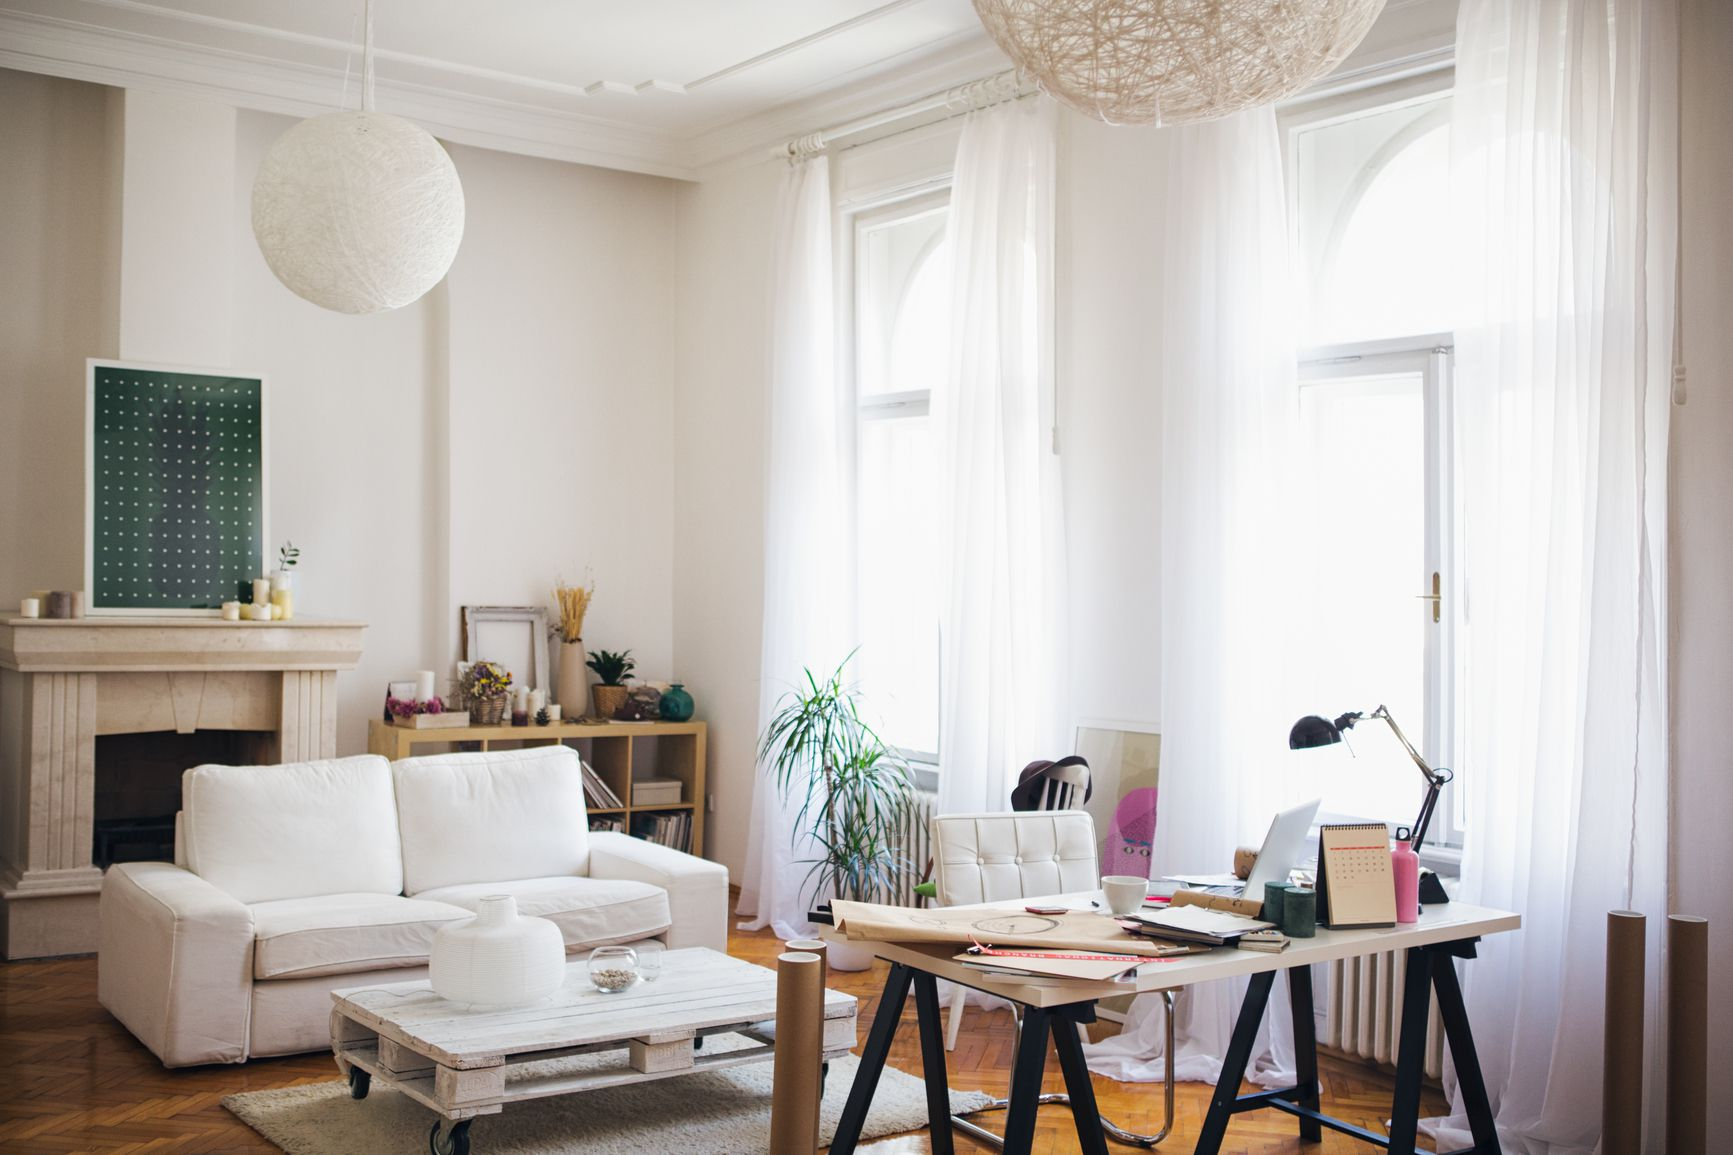 Apartment Decorating Mistakes